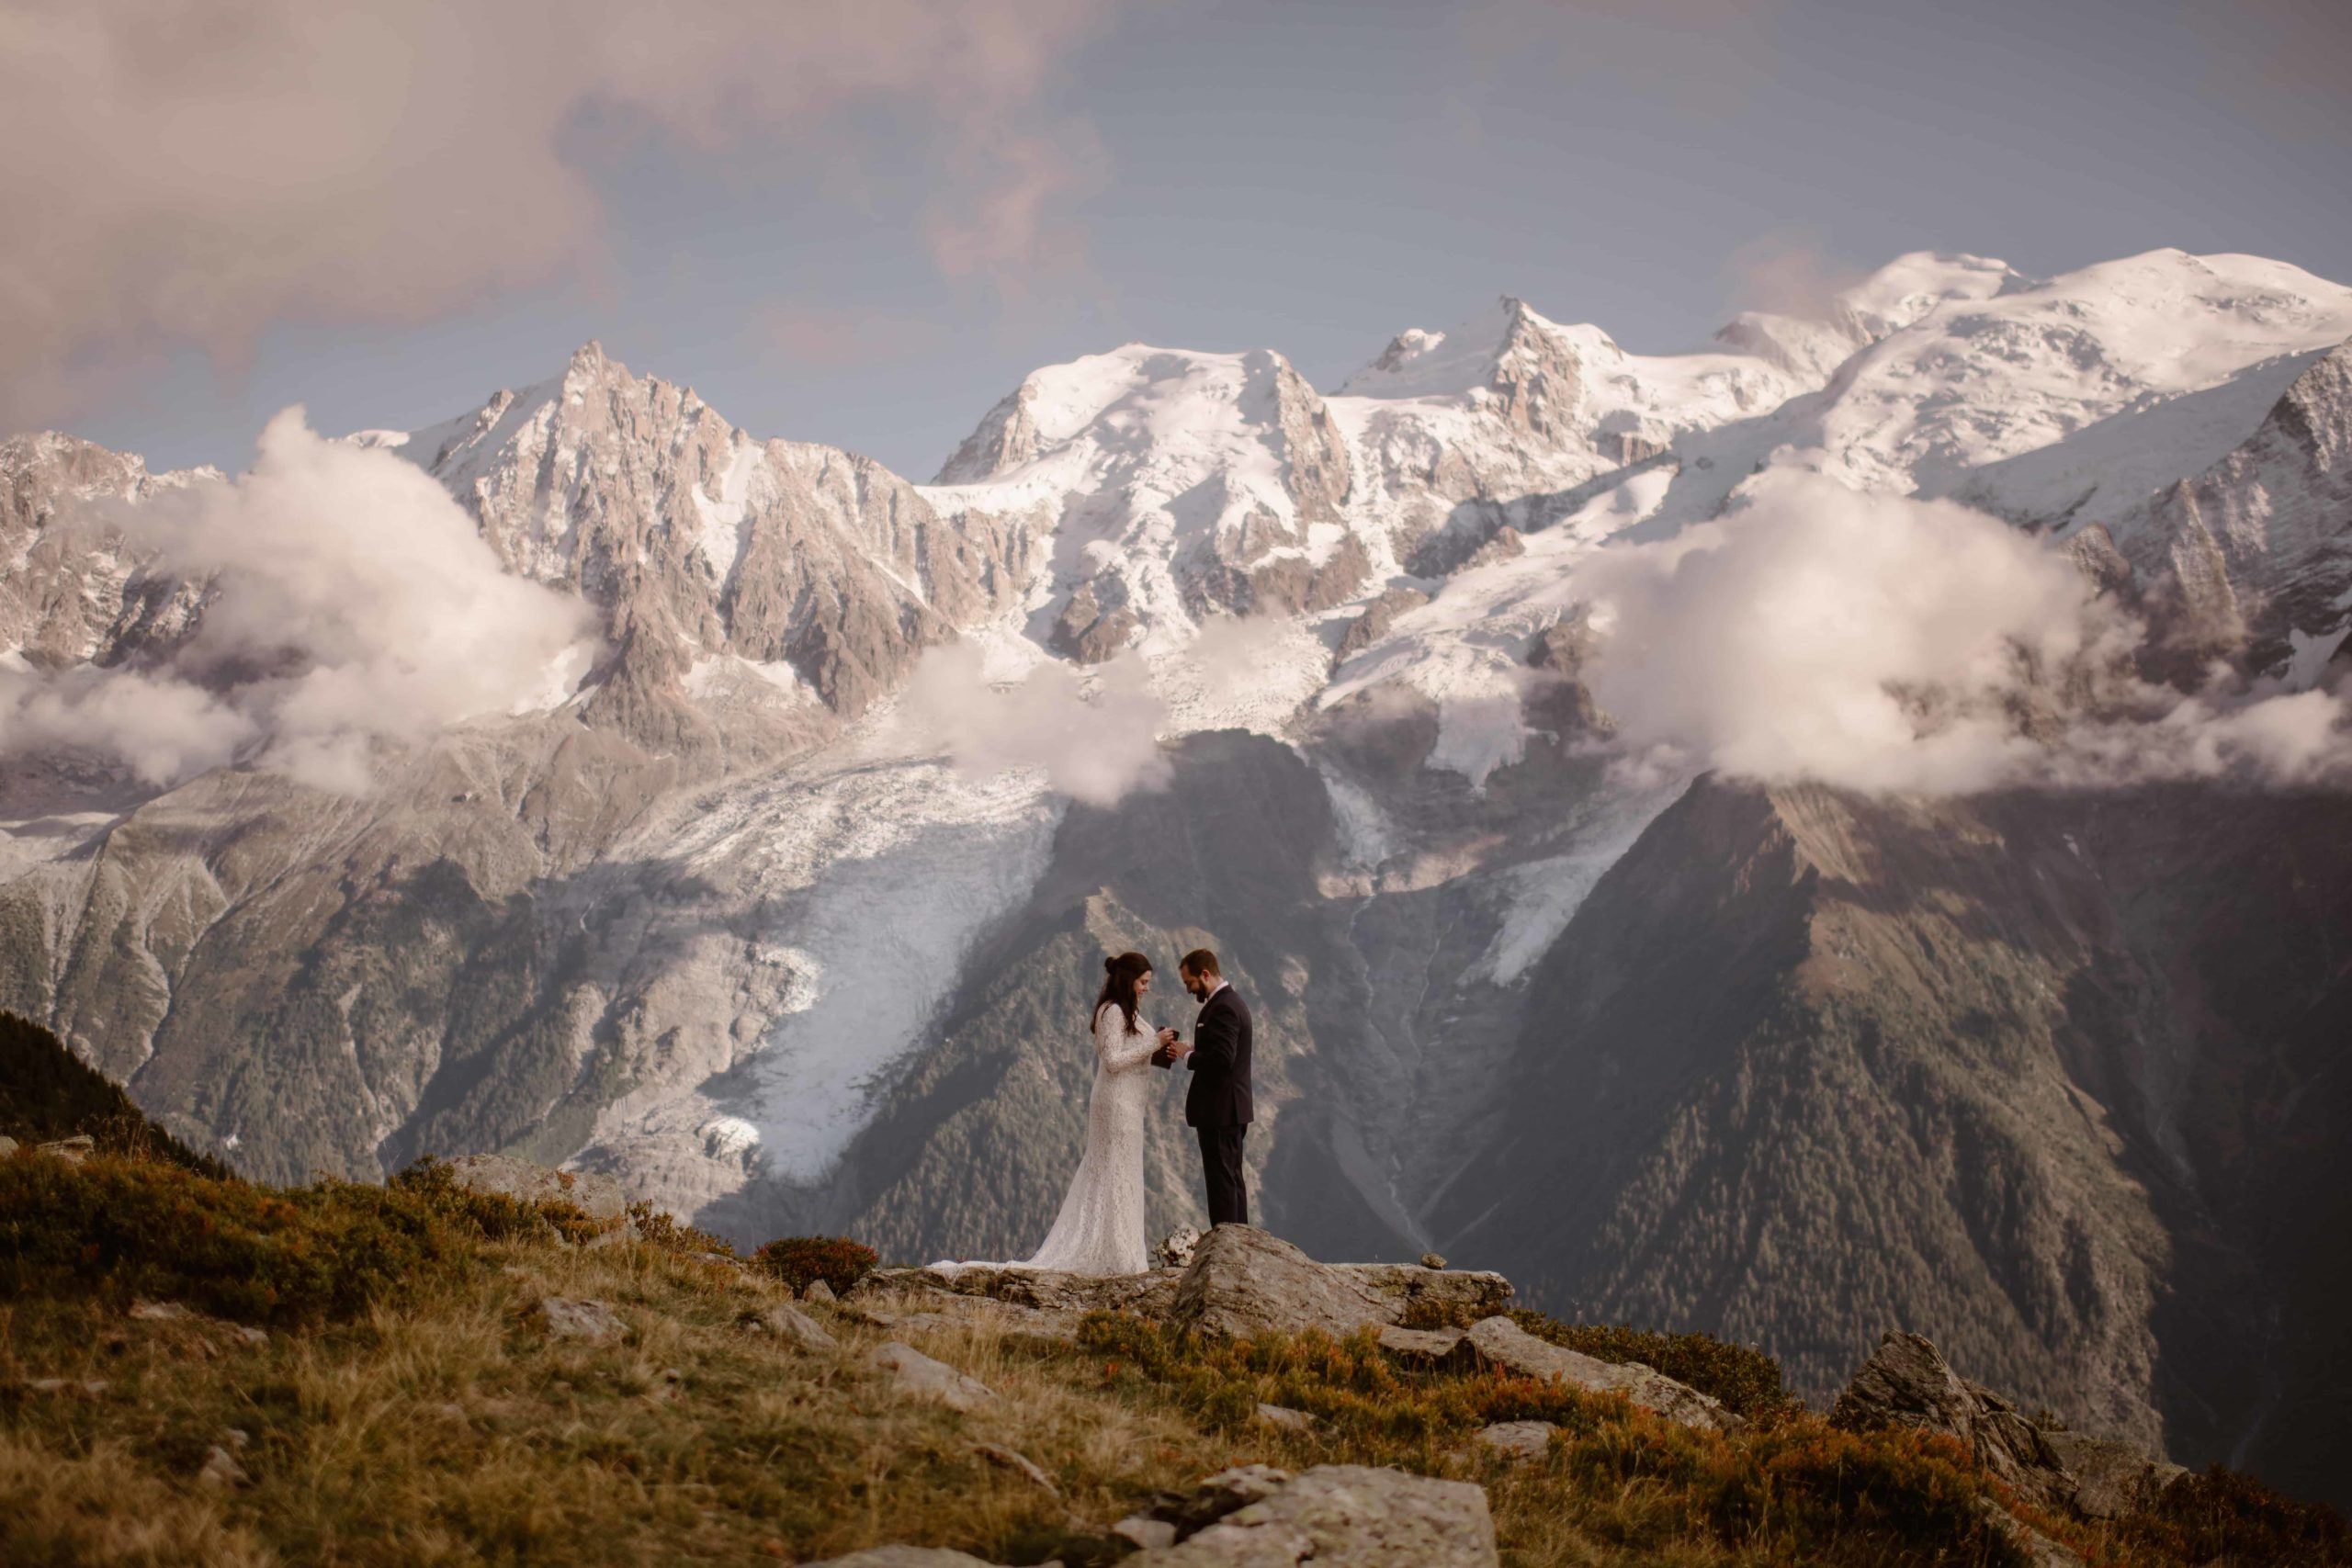 A couple elopes in the mountains near Chamonix, France.